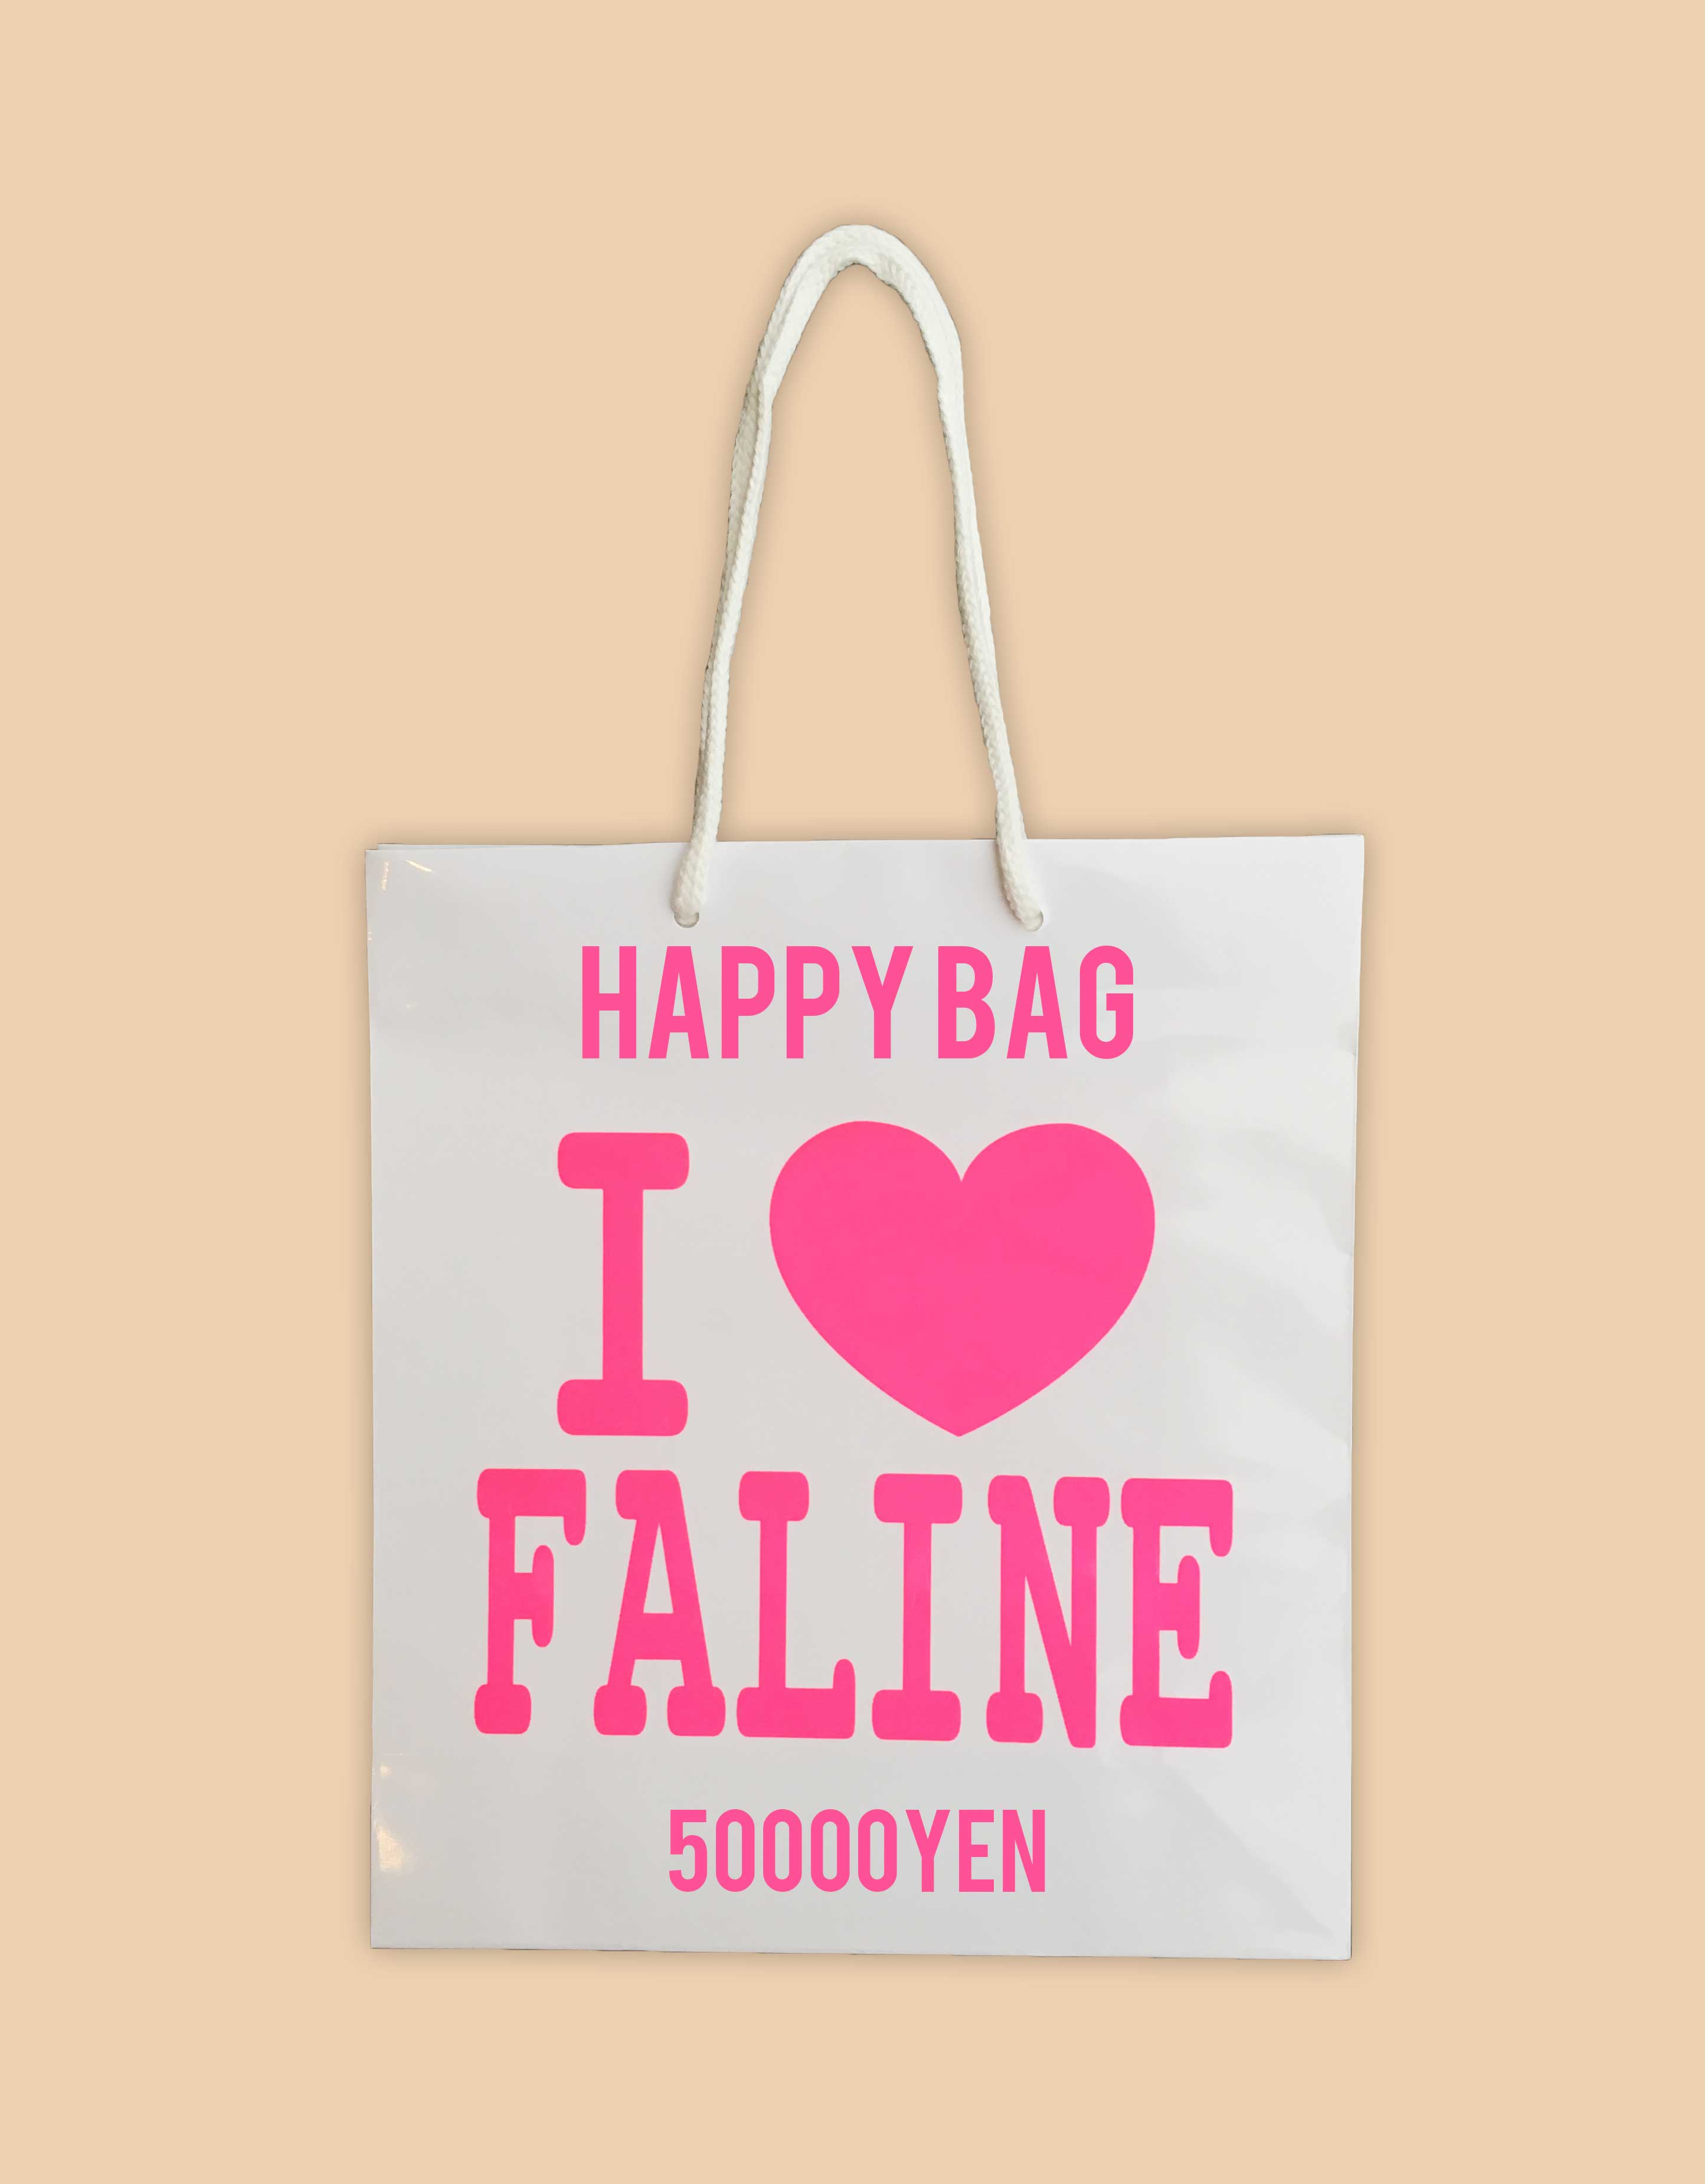 Happy Bag 2017 (50000yen)